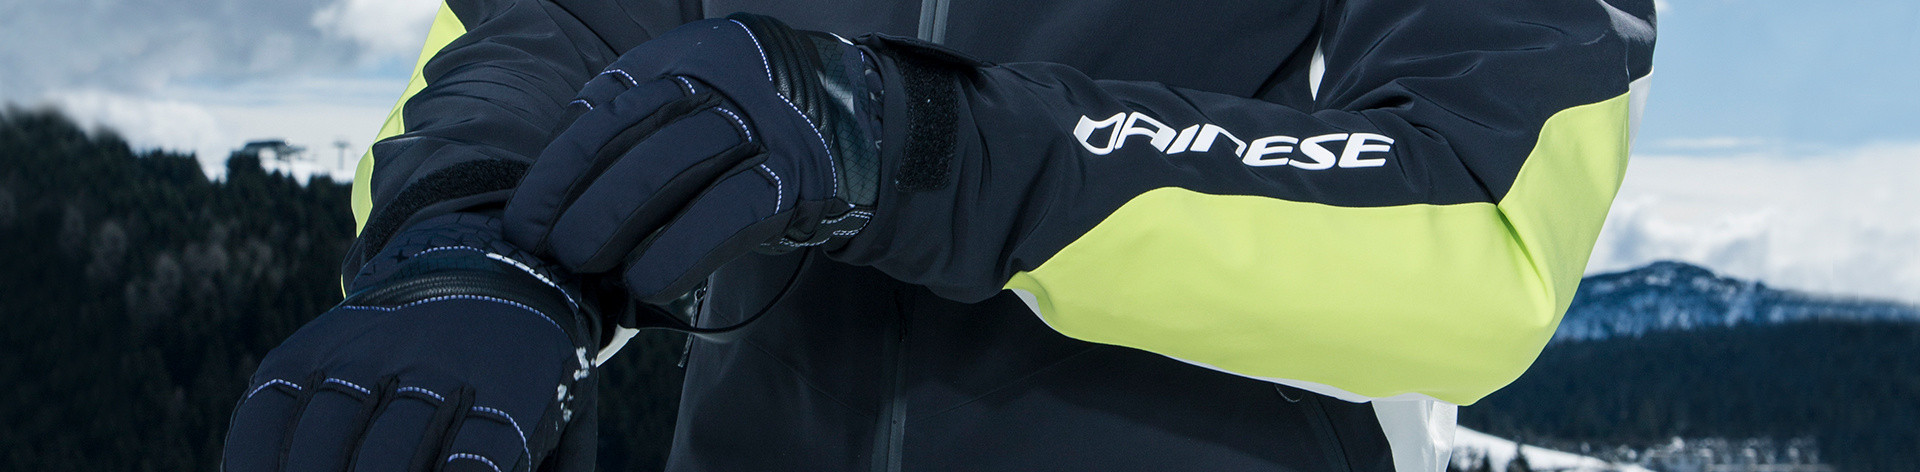 Dainese Winter Sports - Gloves